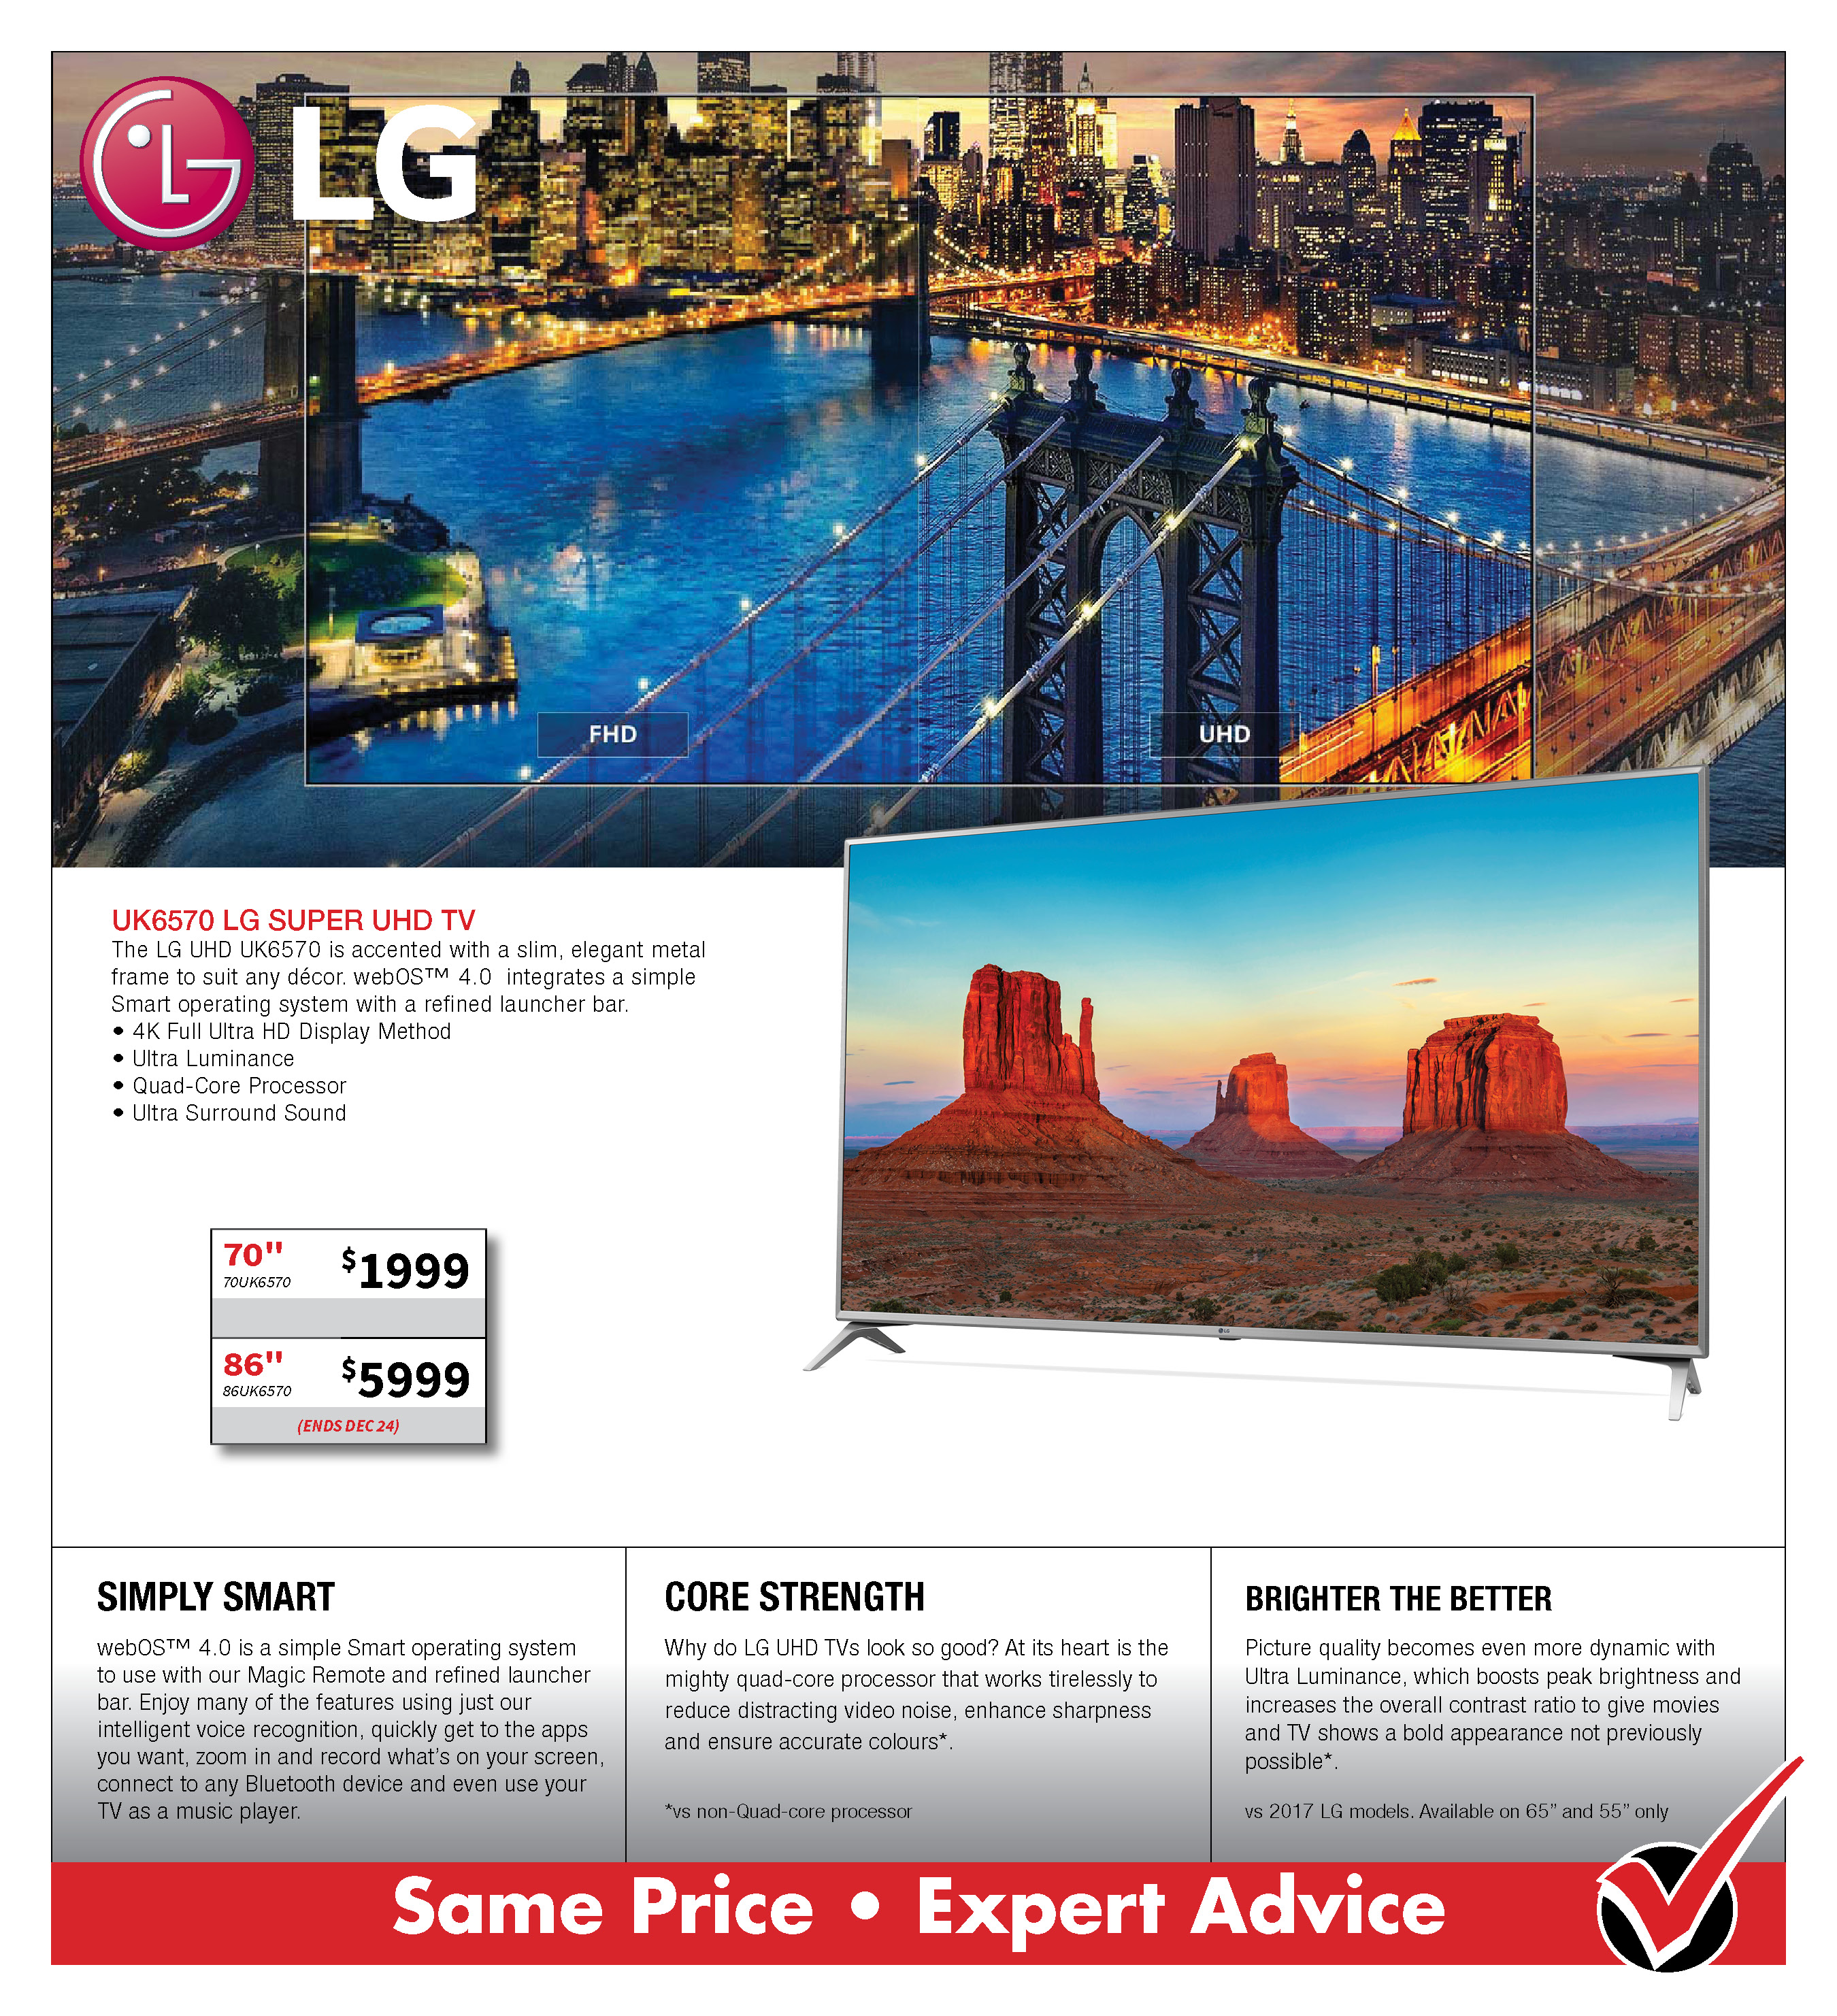 LG UK6570 SUPER UHD TV